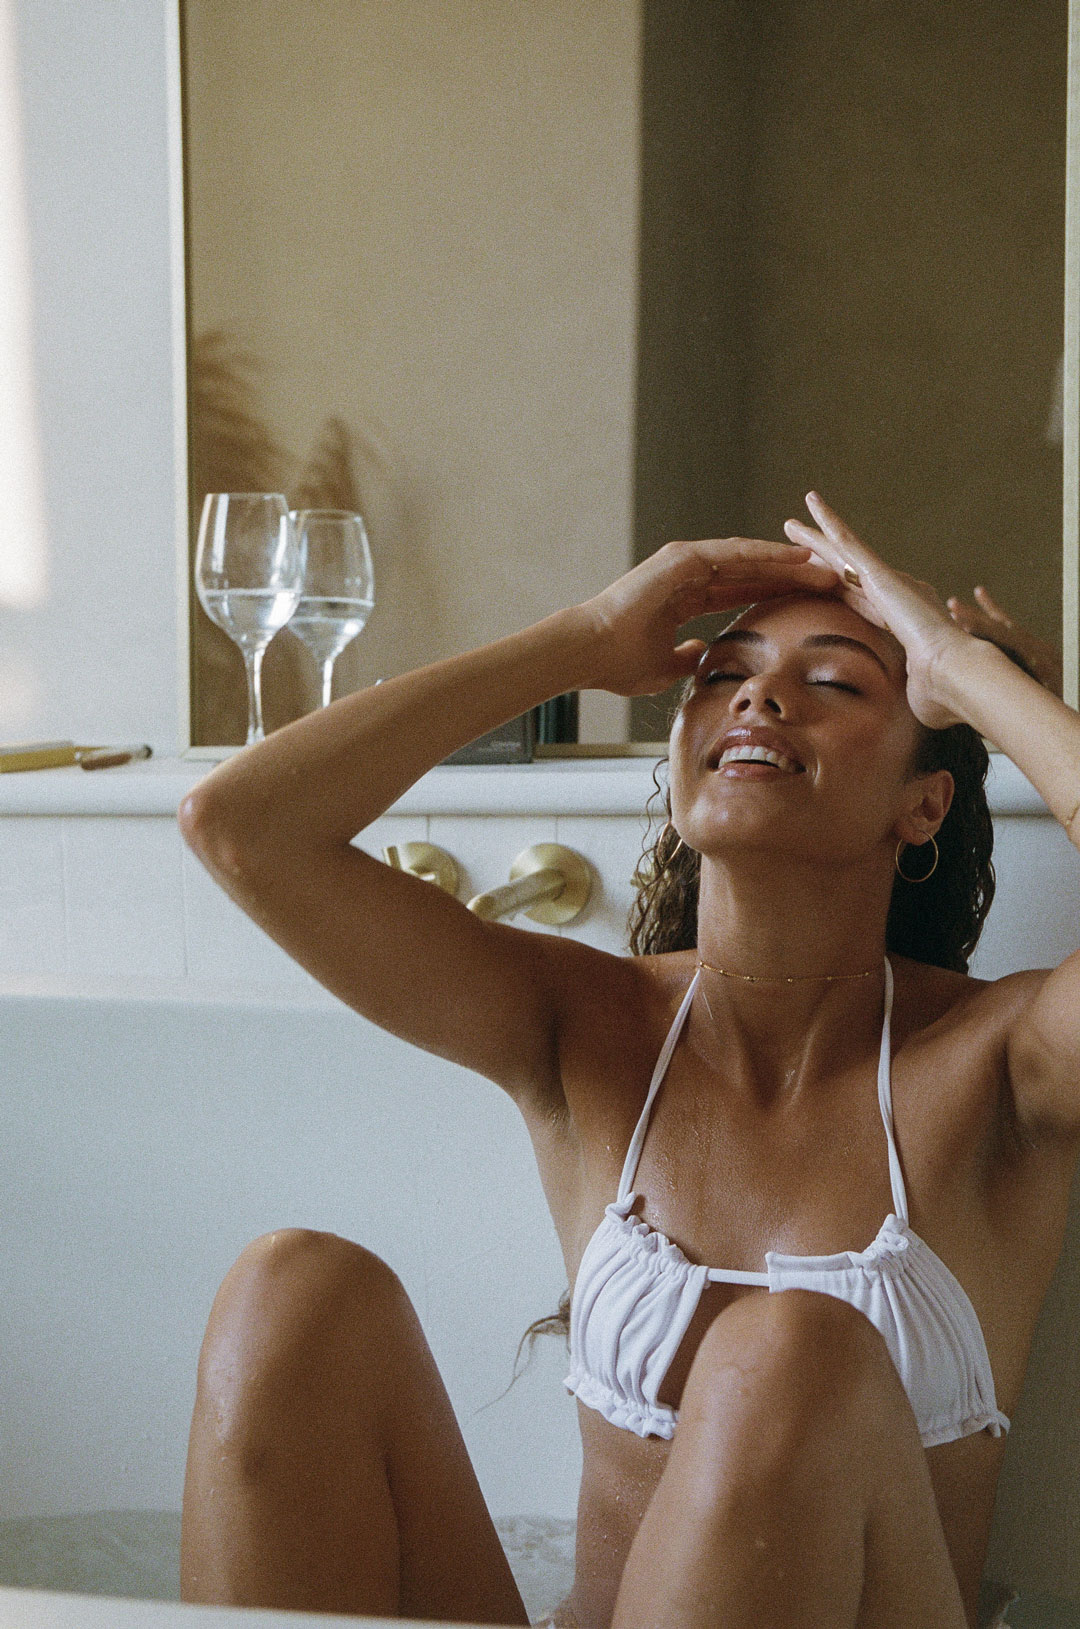 Woman in a spa bath with a mirror behind her